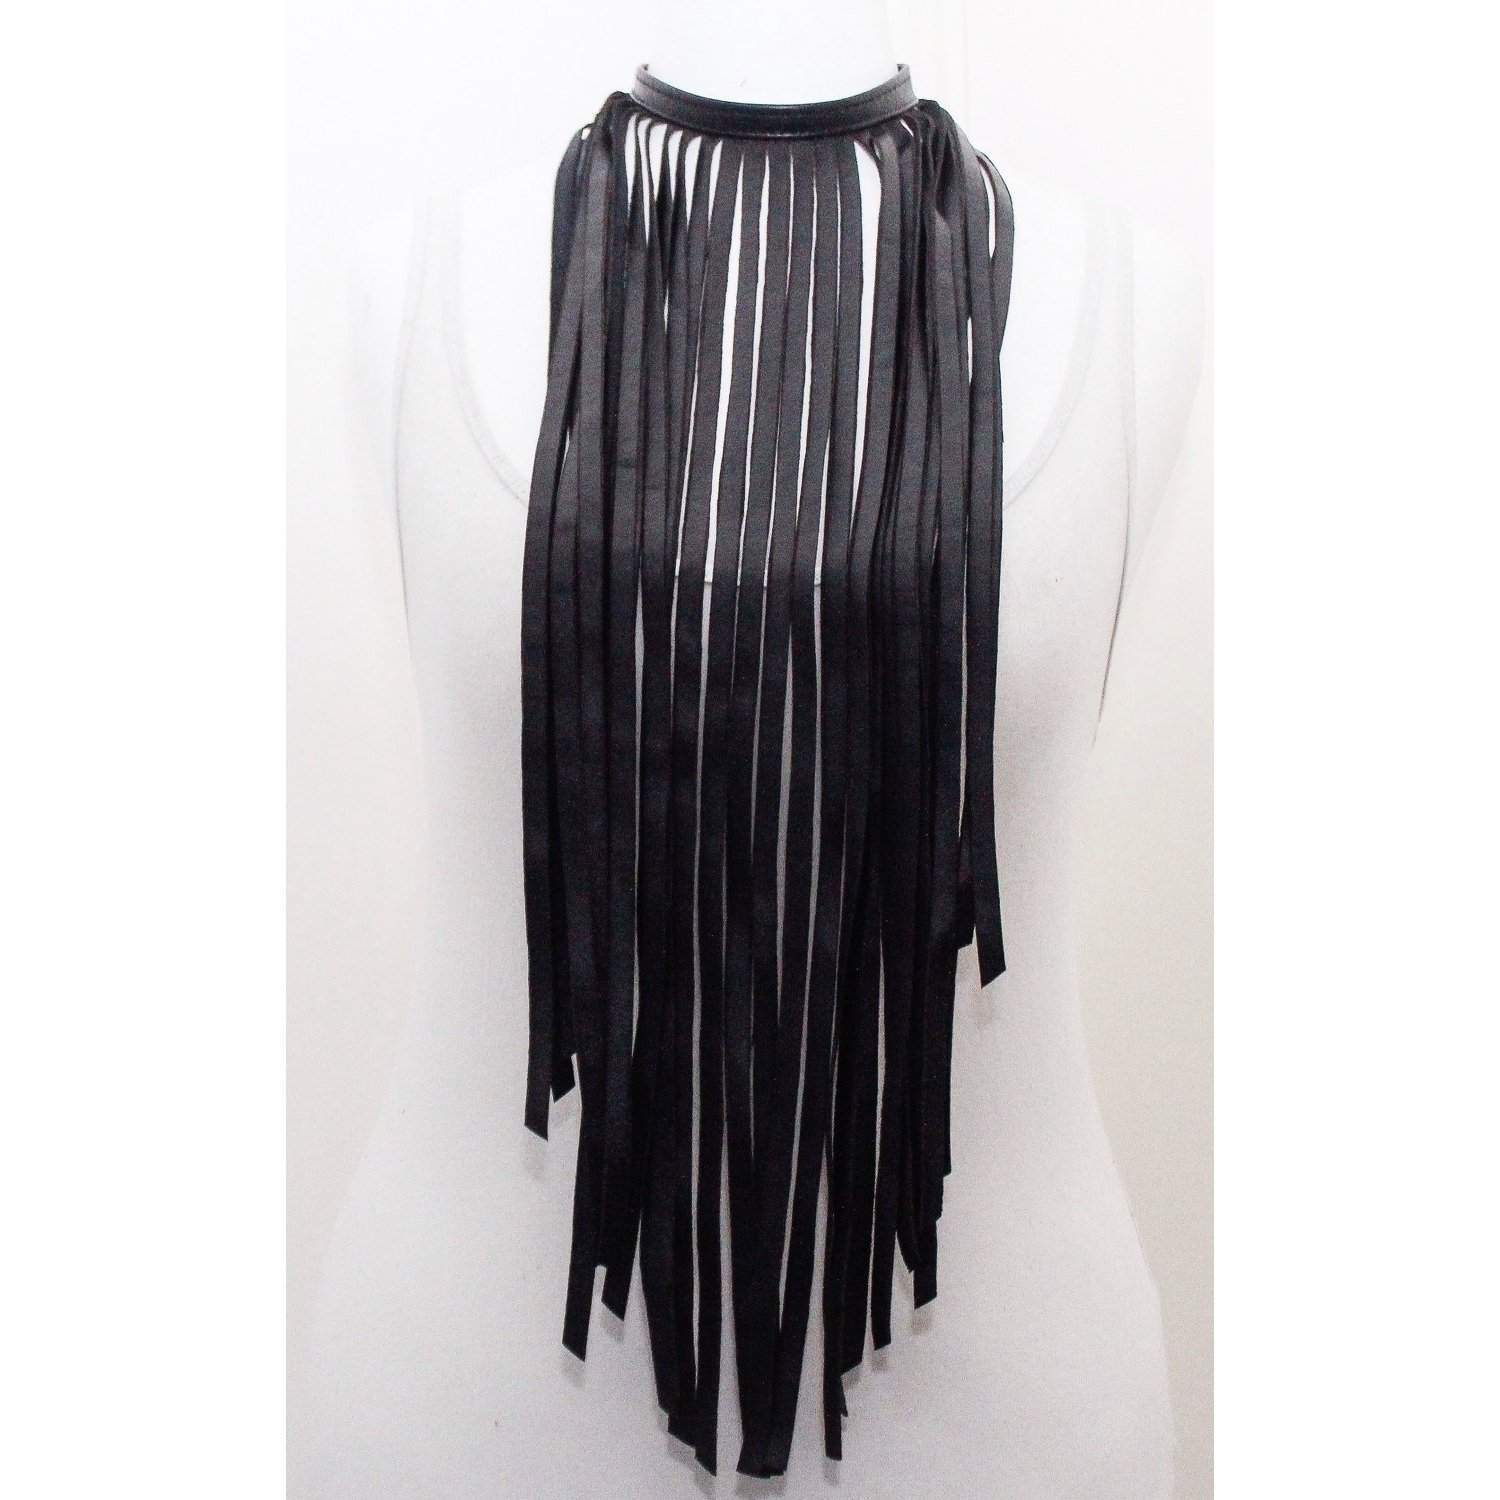 Black Fringe Necklace - loveyaayaa